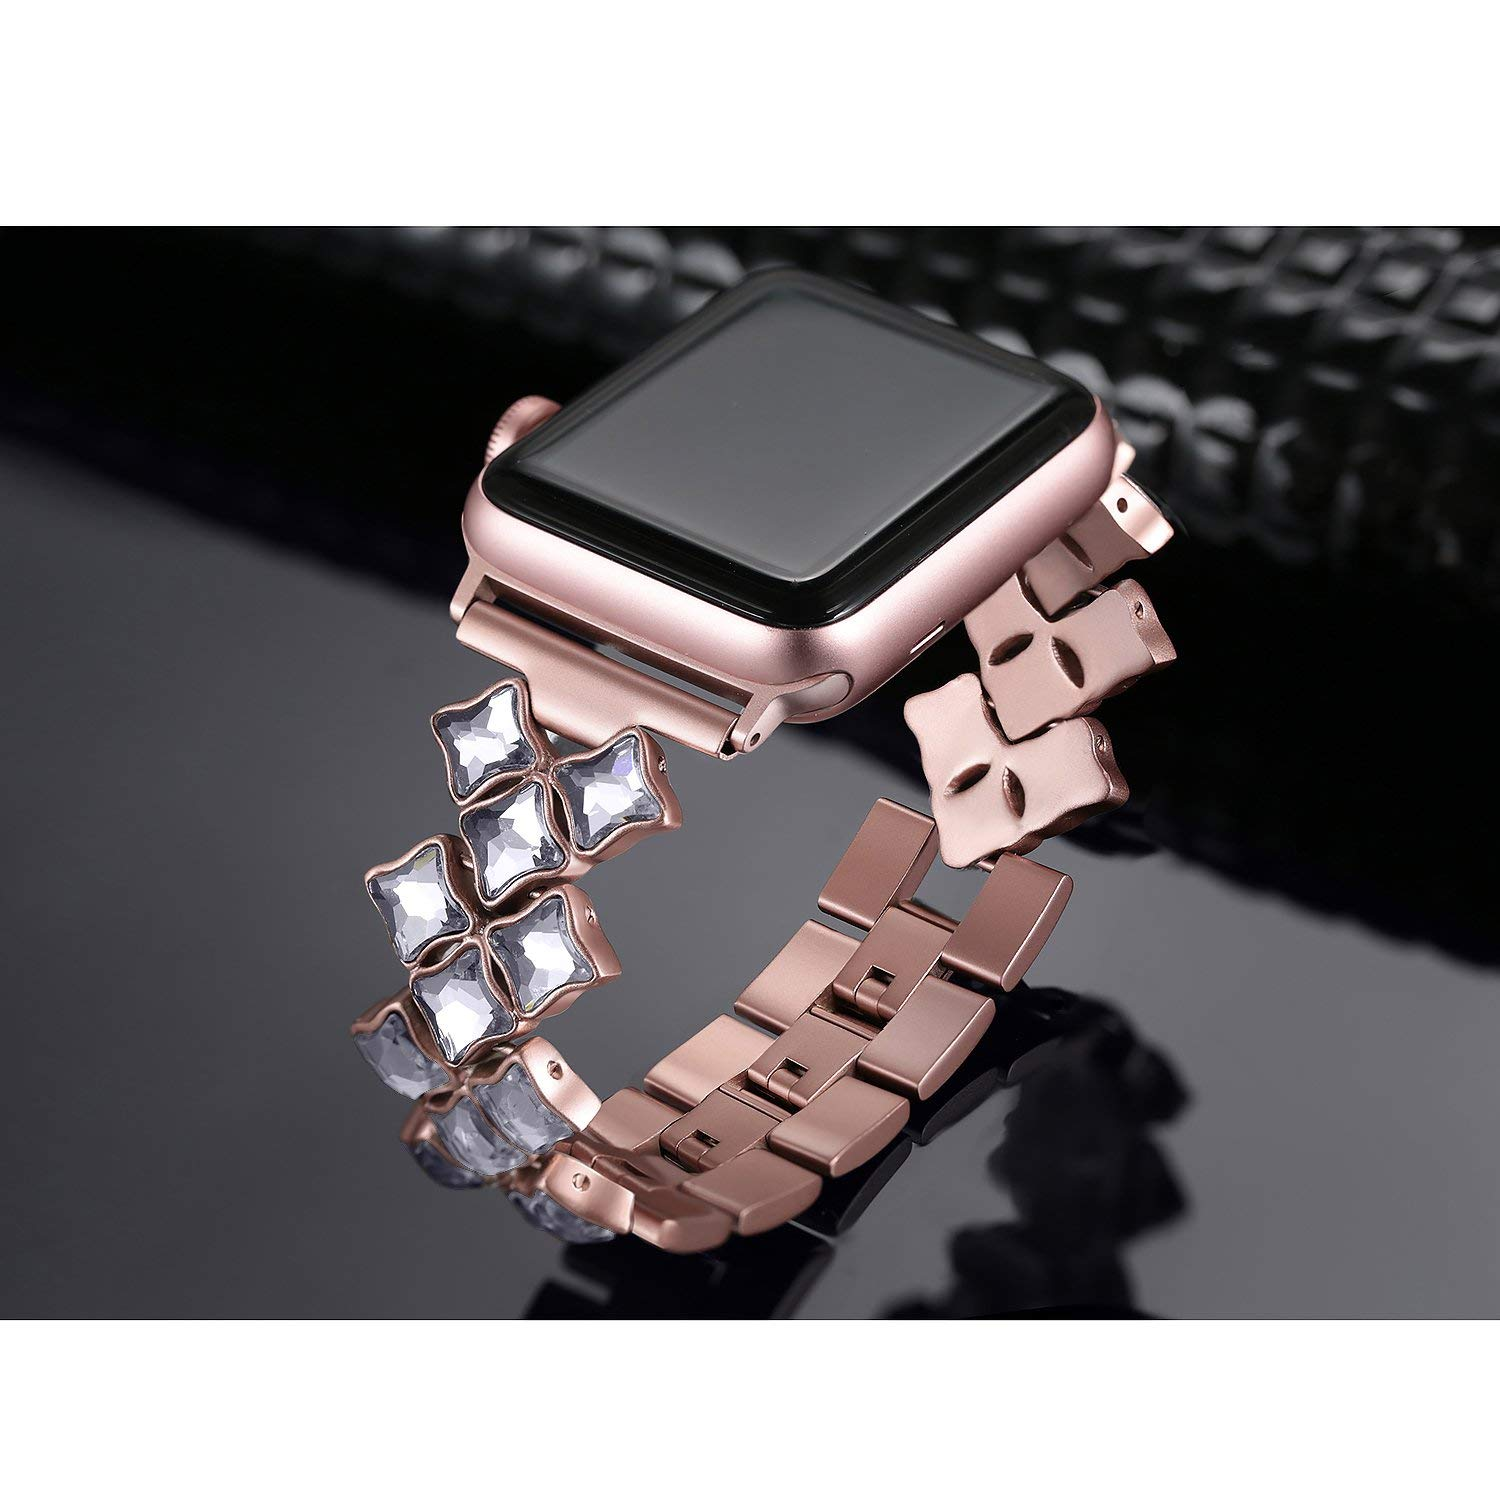 Apple Watch Bands Rose Gold Bling Diamond Stainless Steel Strap Iwatch Bracelet 44Mm 40Mm 42Mm 38Mm Series 1 2 3 4